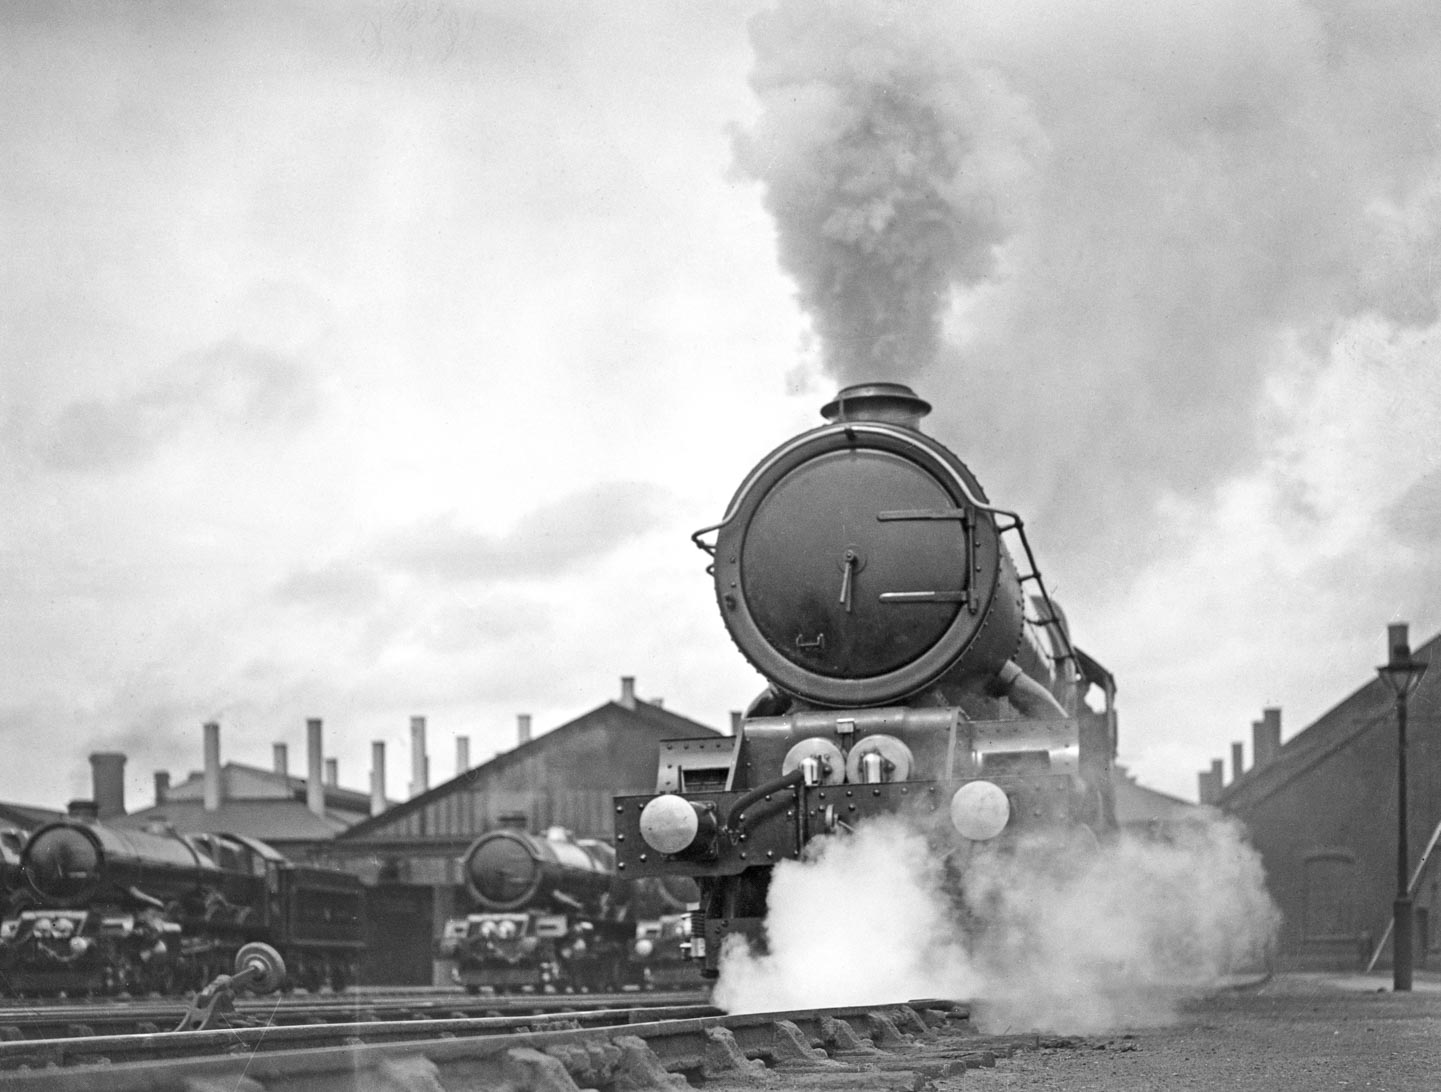 No. 6024 at Swindon when new, 2 July 1930. Courtesy Getty Images.